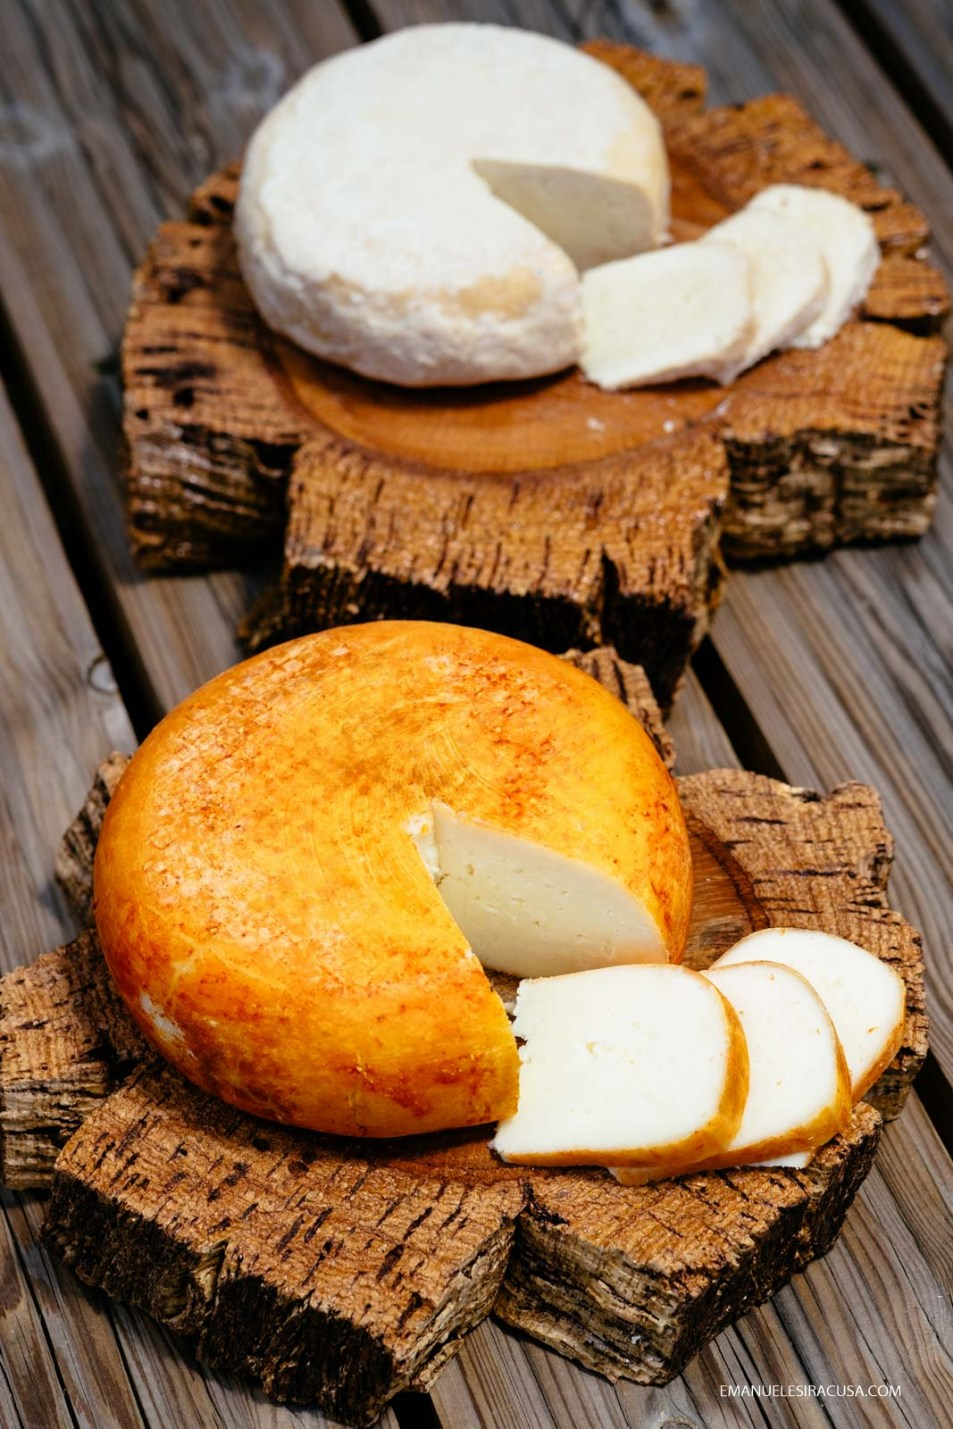 Local Beira Baixa Cheeses, Termas de Monfortinho, 2016